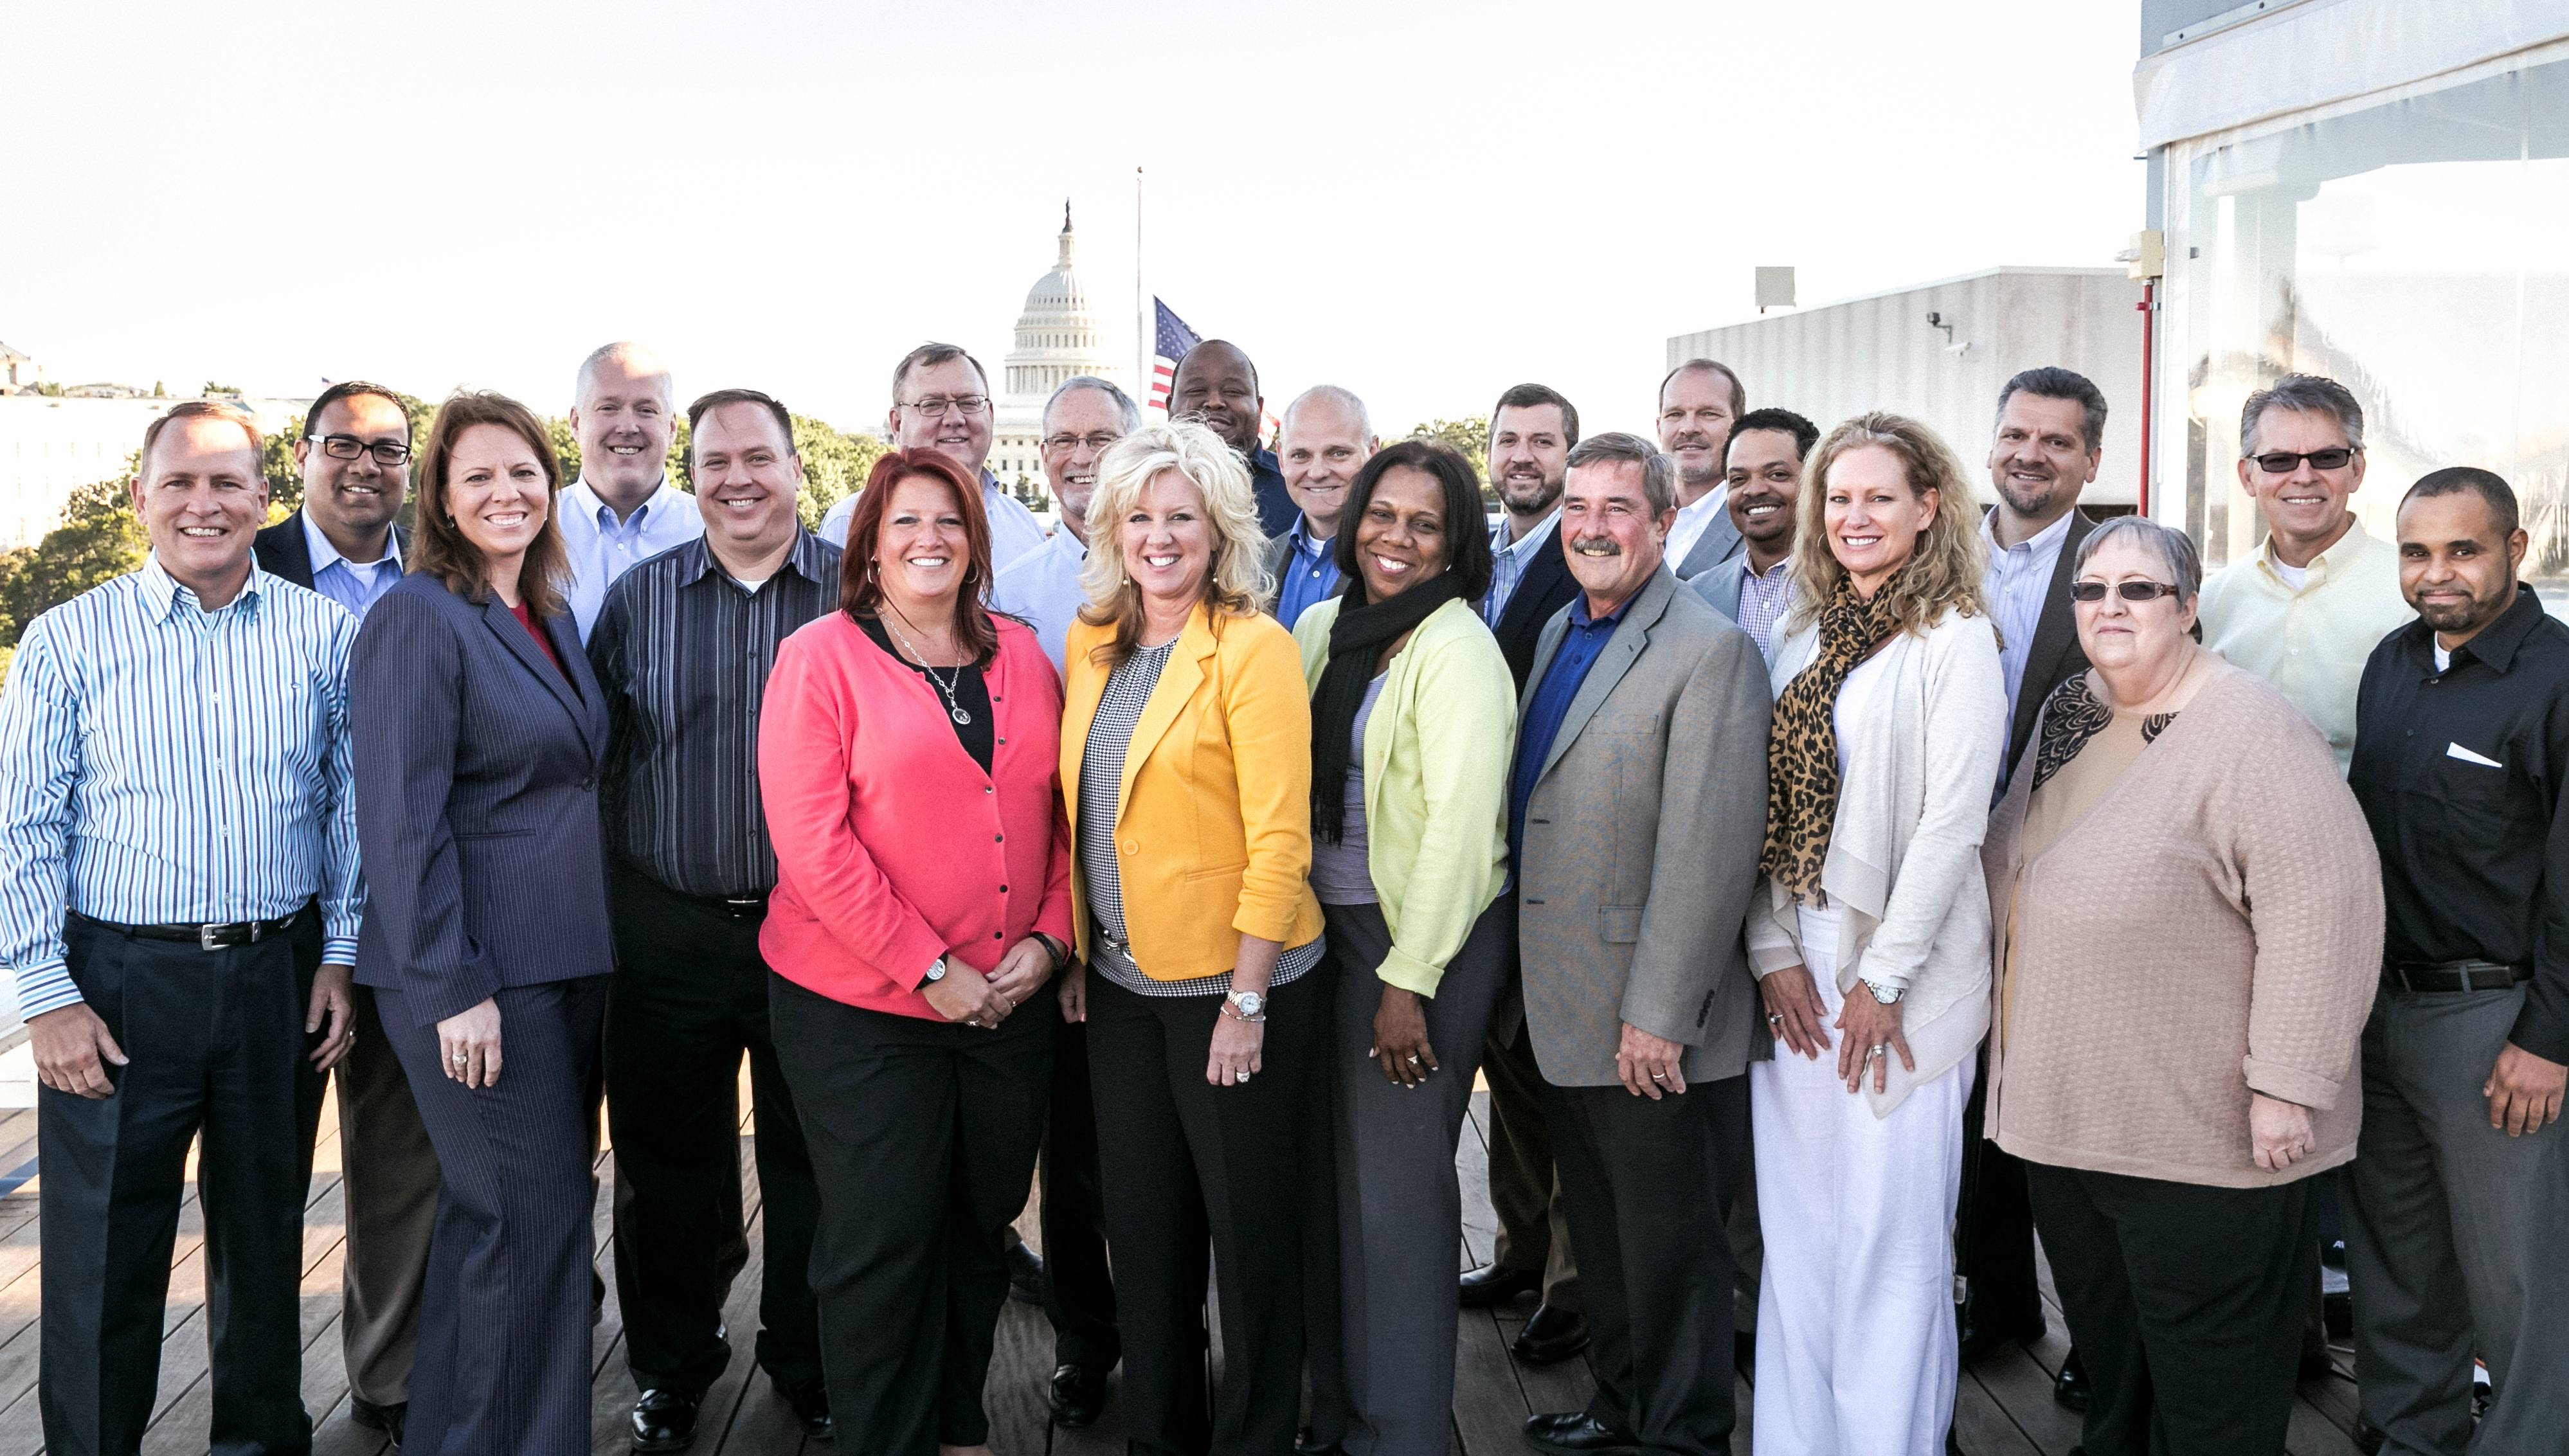 Allstate employees and agency owners on Capitol Hill to meet with Congressional leaders on key insurance issues.